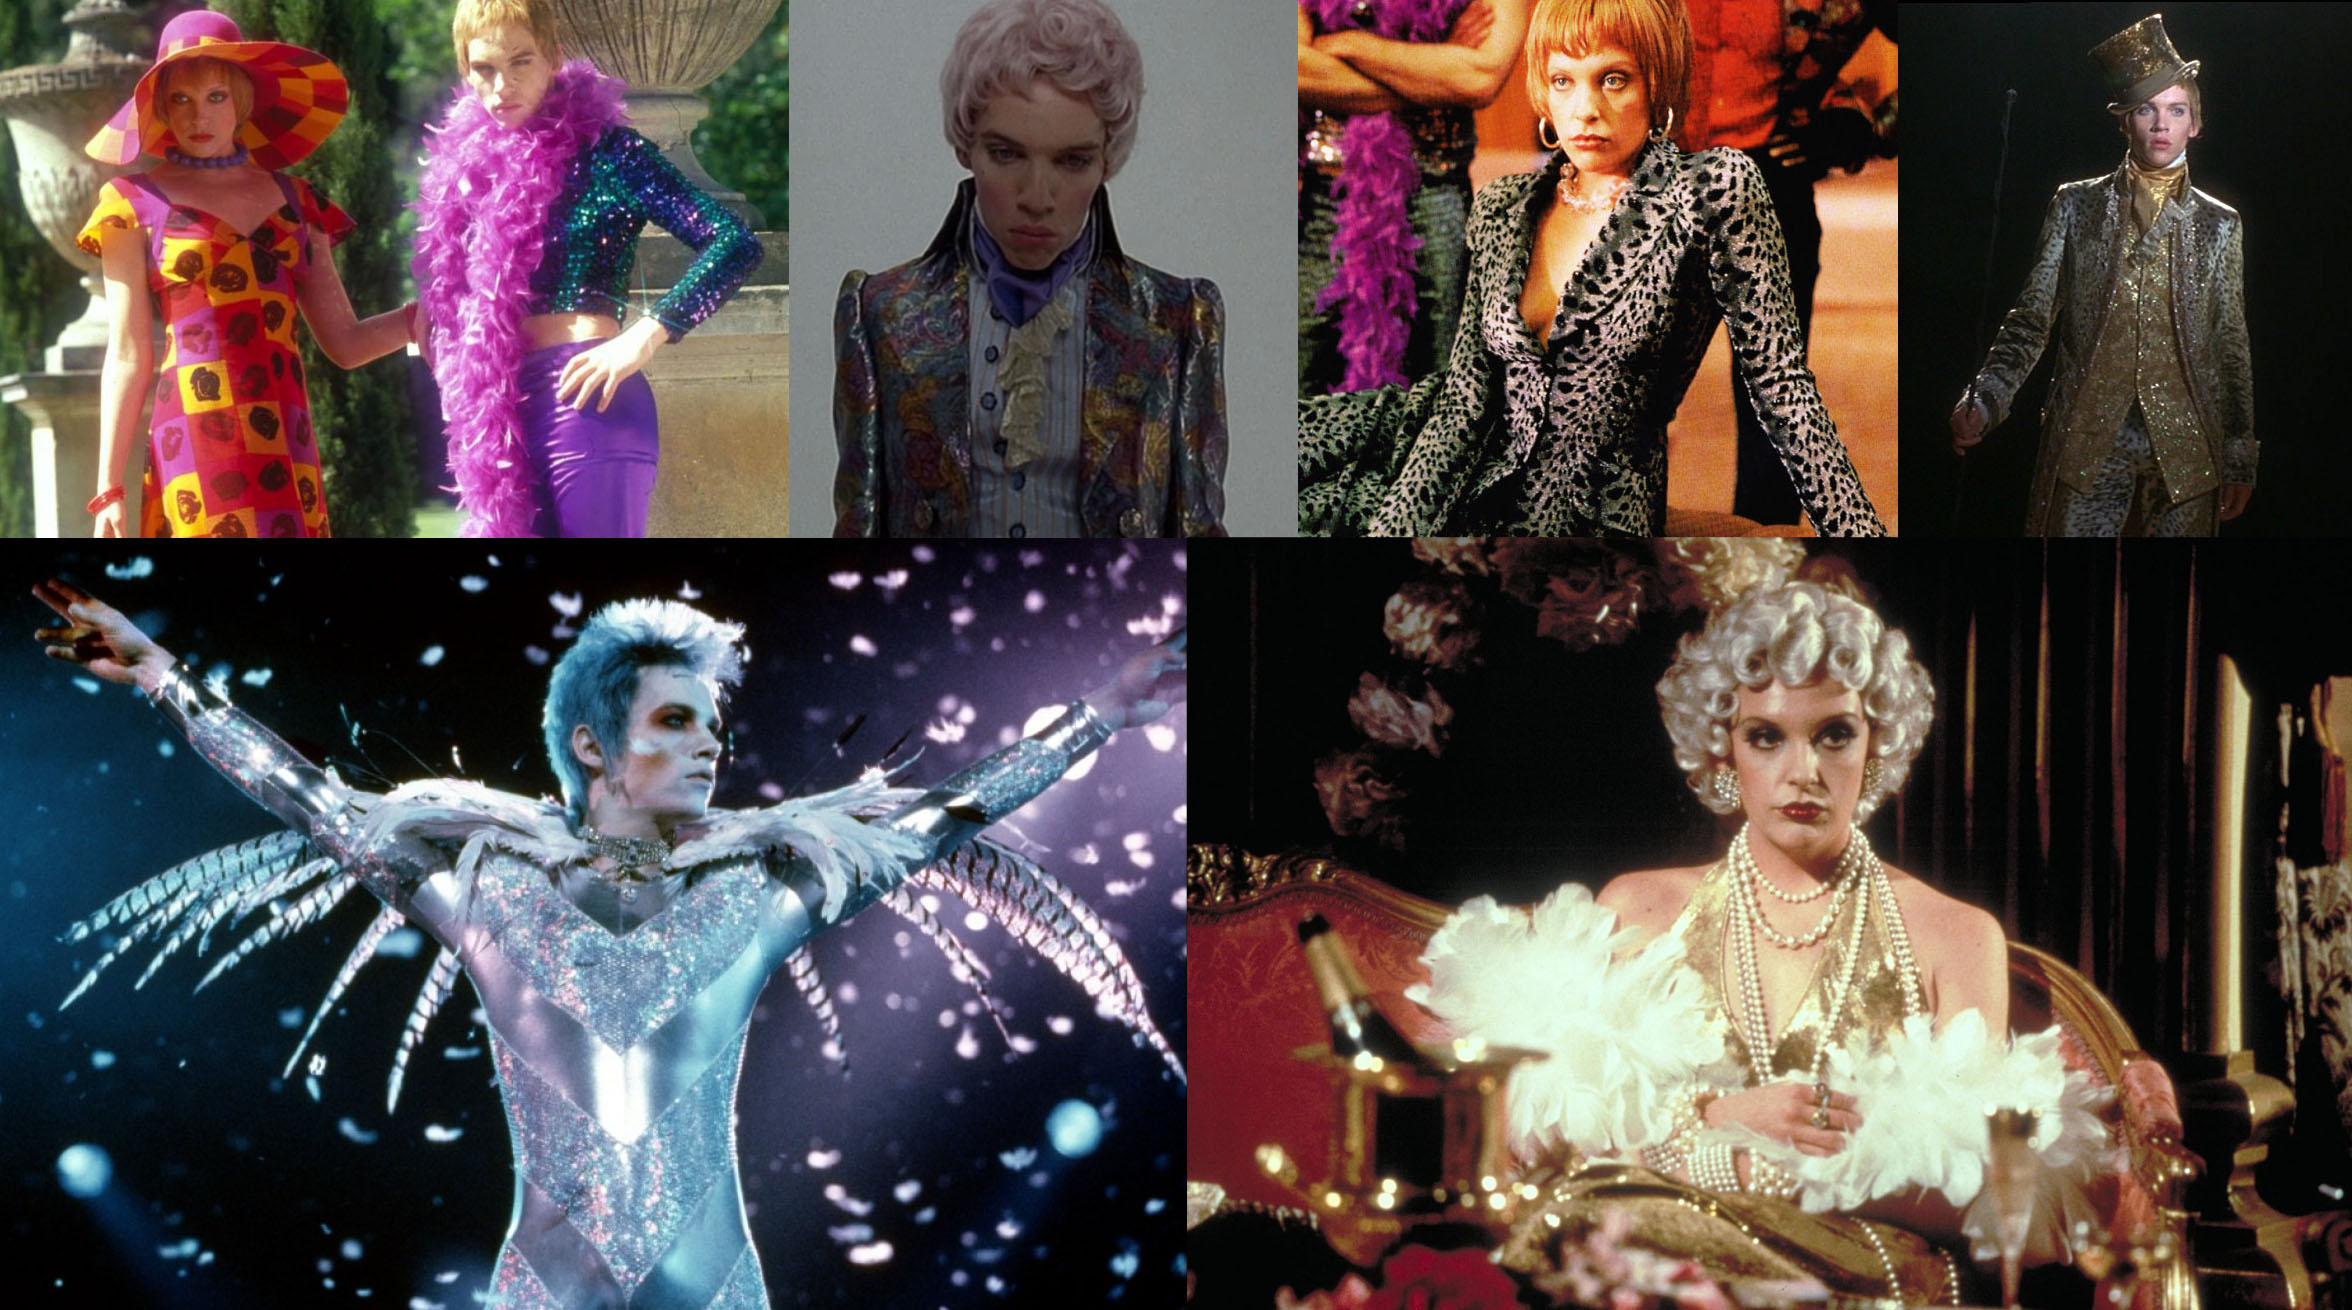 Costume designs bring visions and eras to life in Velvet Goldmine